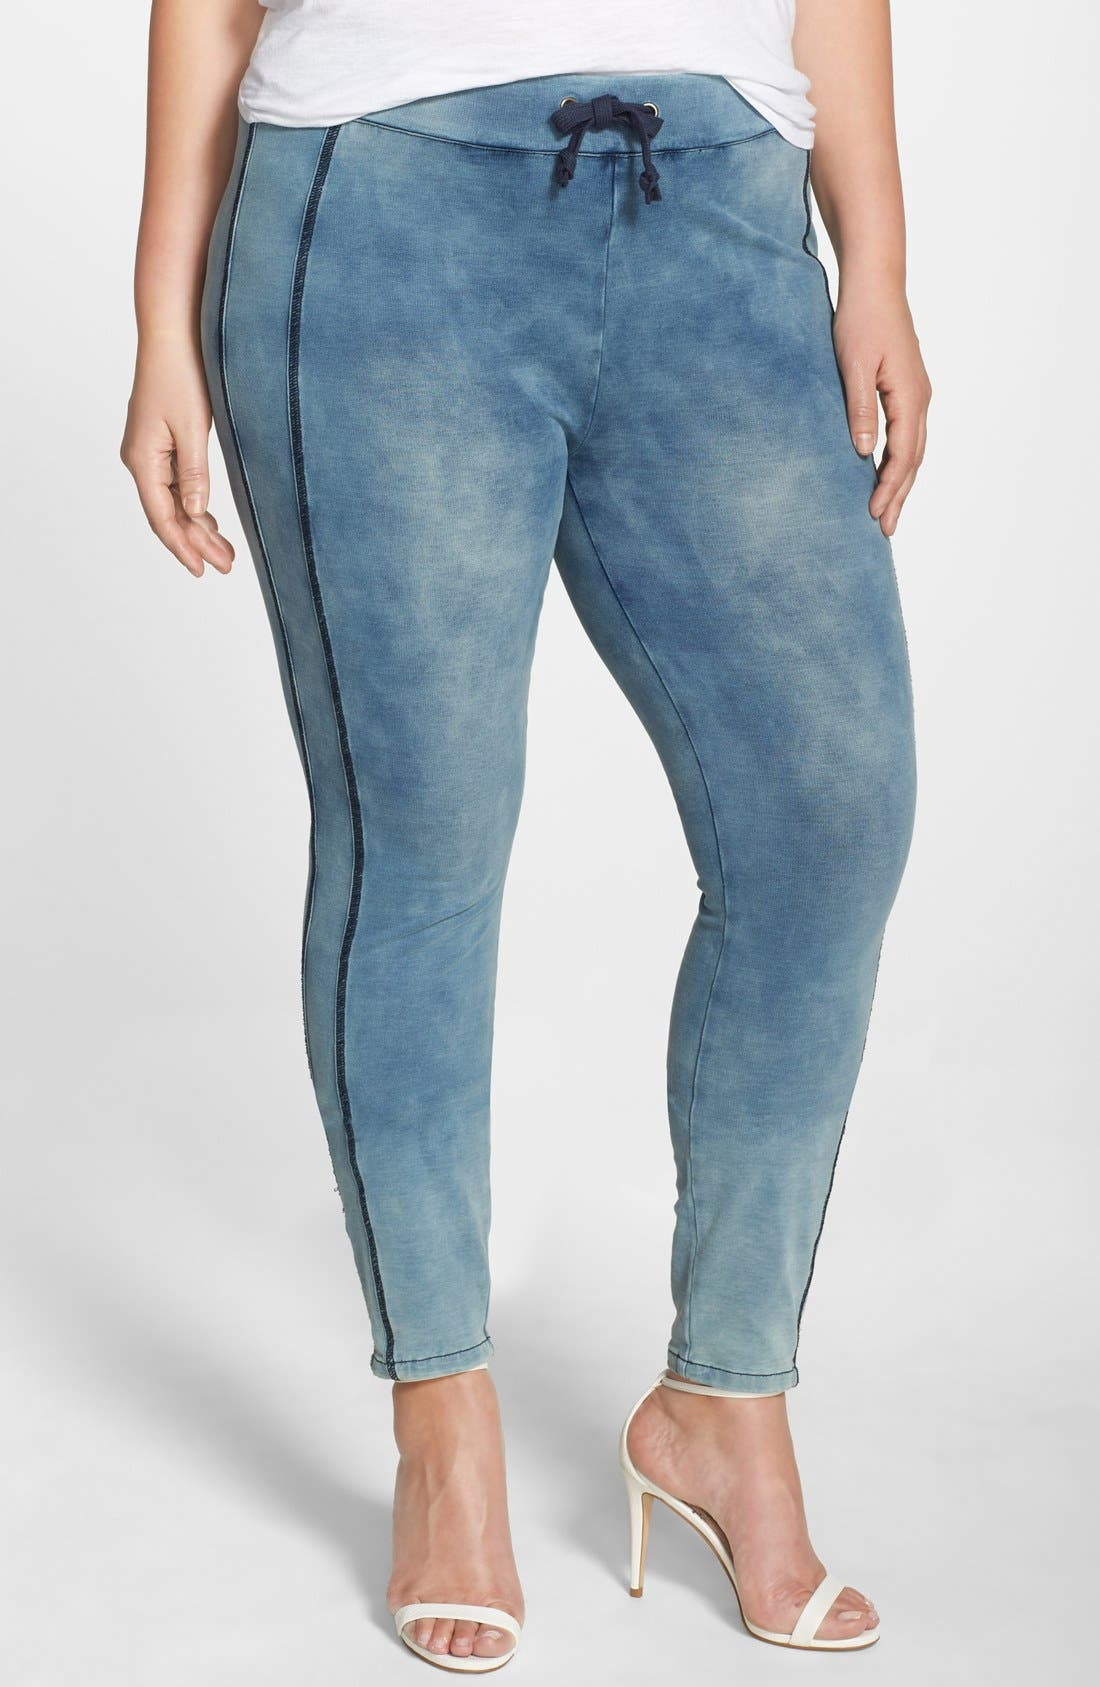 POETIC JUSTICE 'Naomi' Stretch Knit Denim Jogger Pants